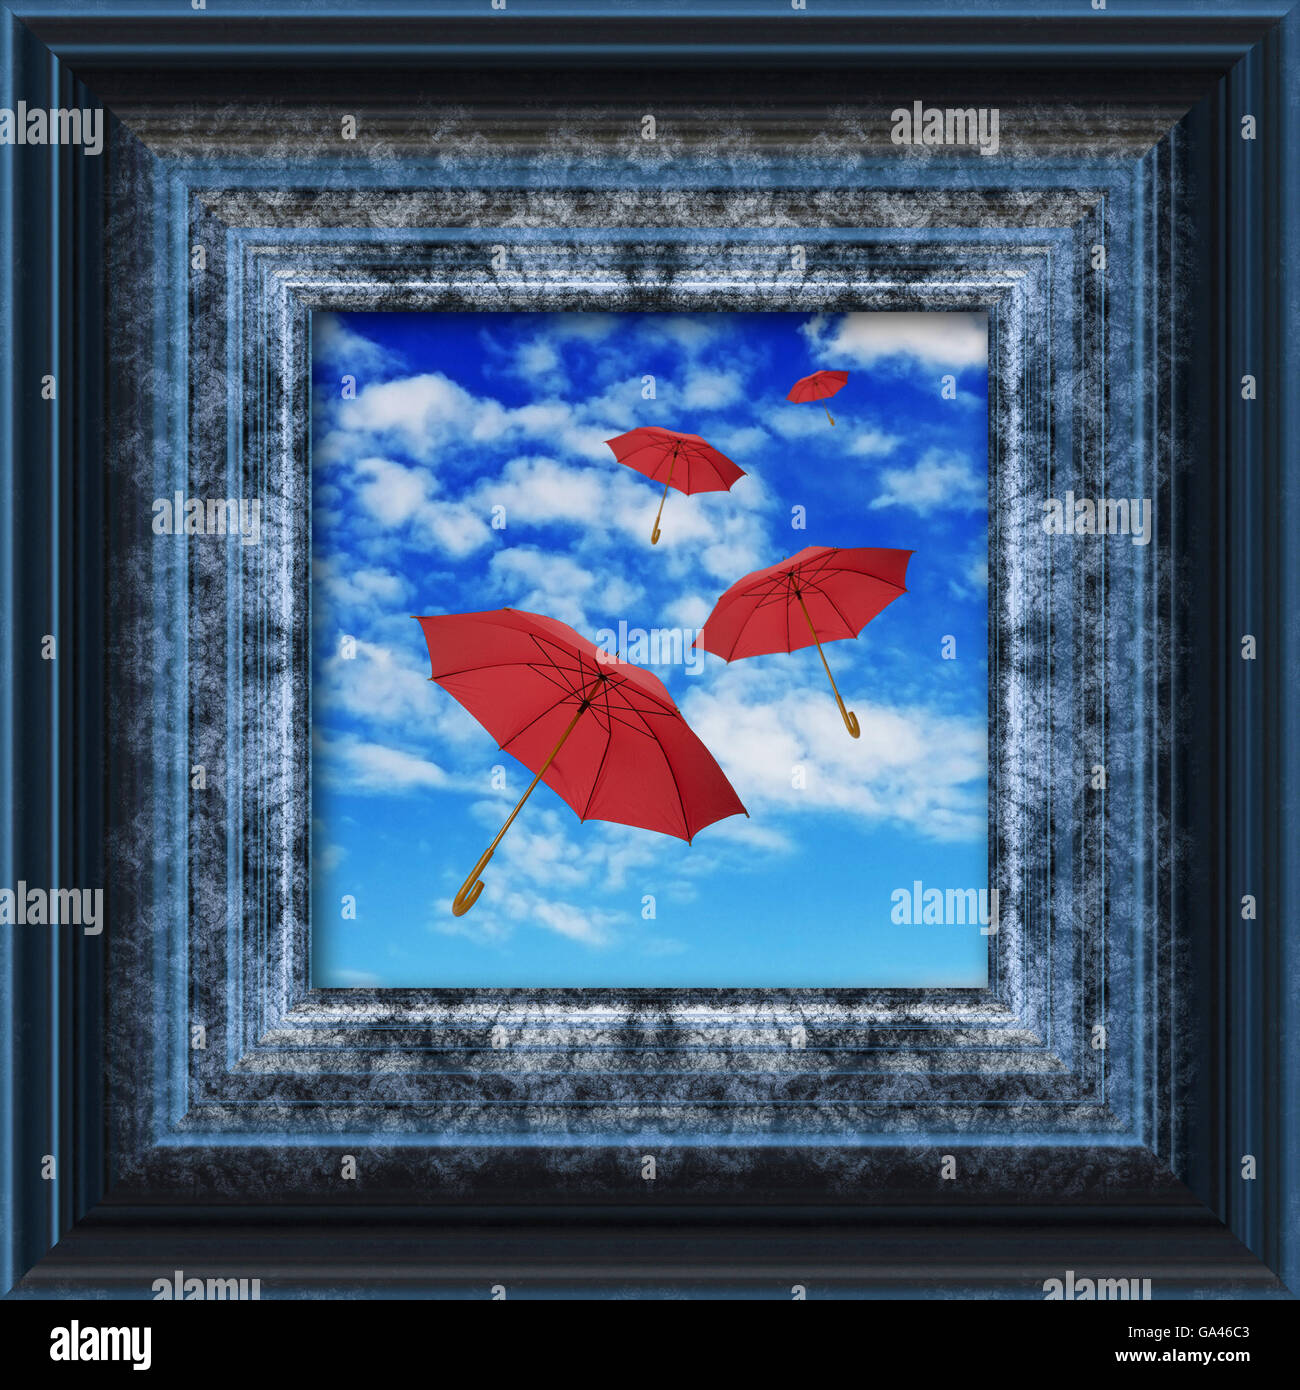 red umbrellas flying in the sky, inside a picture frame - Stock Image